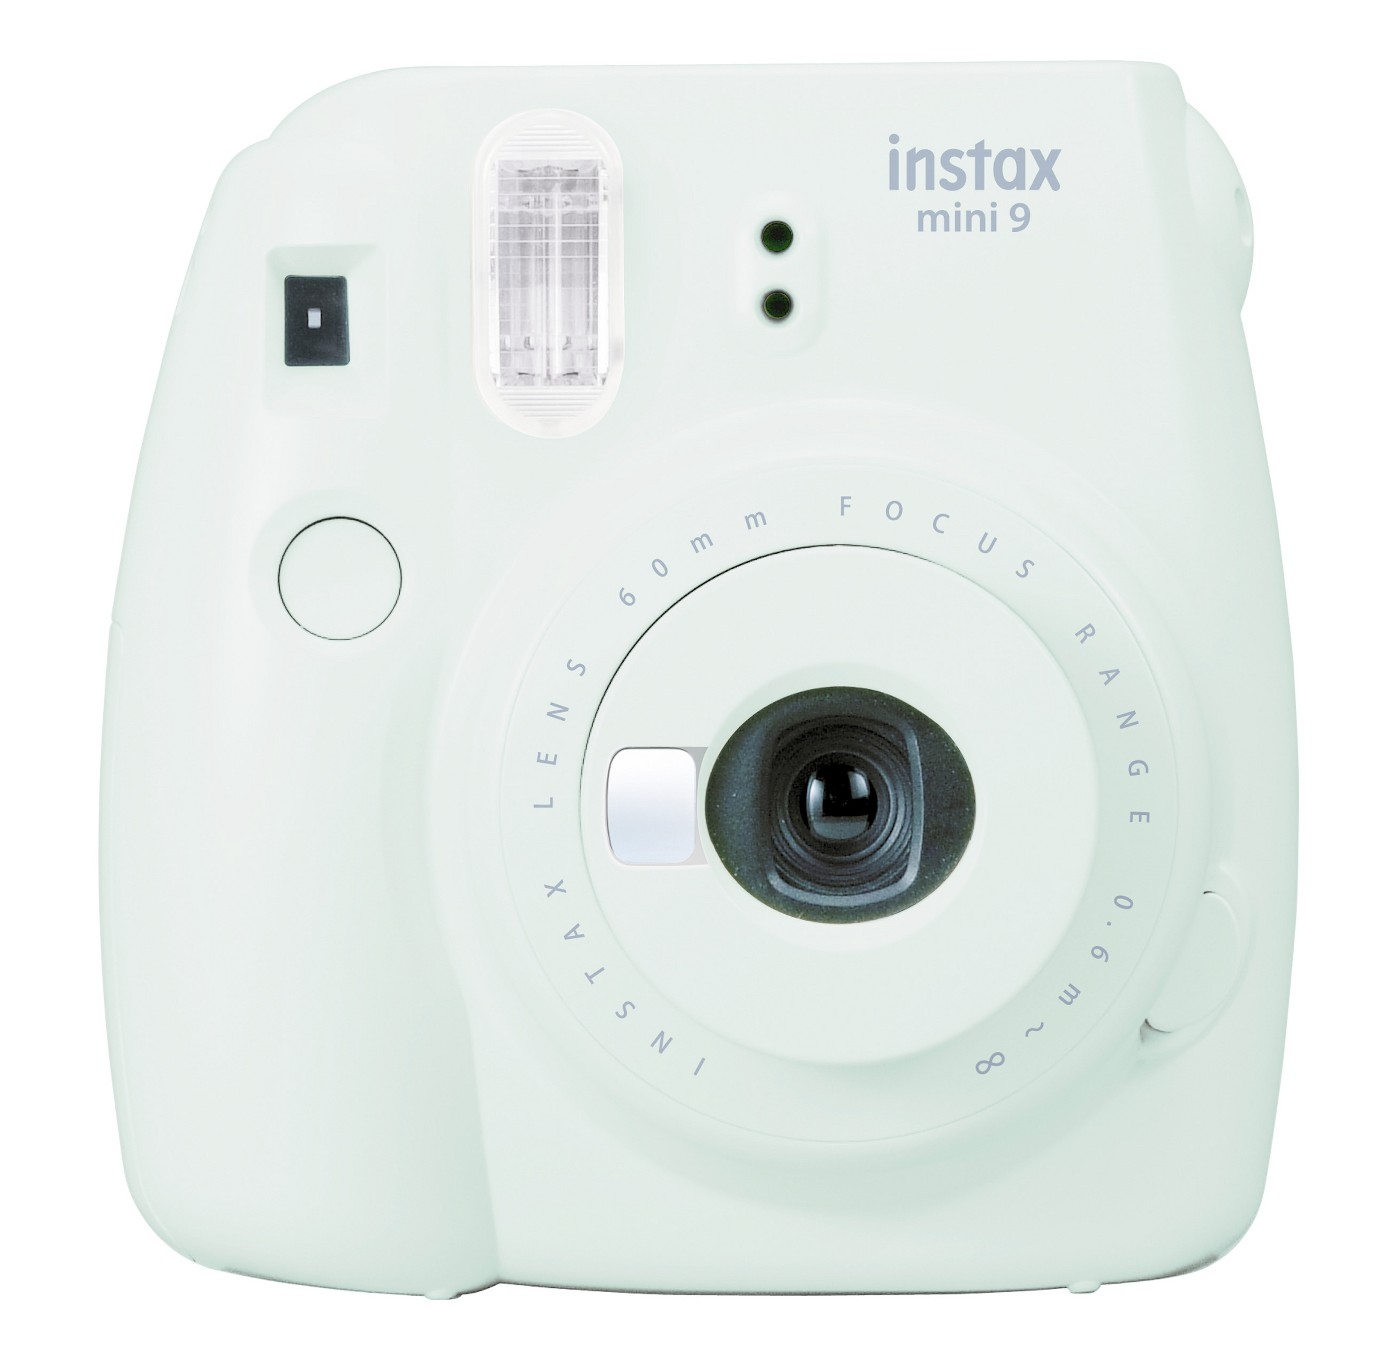 Fujifilm Instax Mini 9 Camera - image 1 of 7